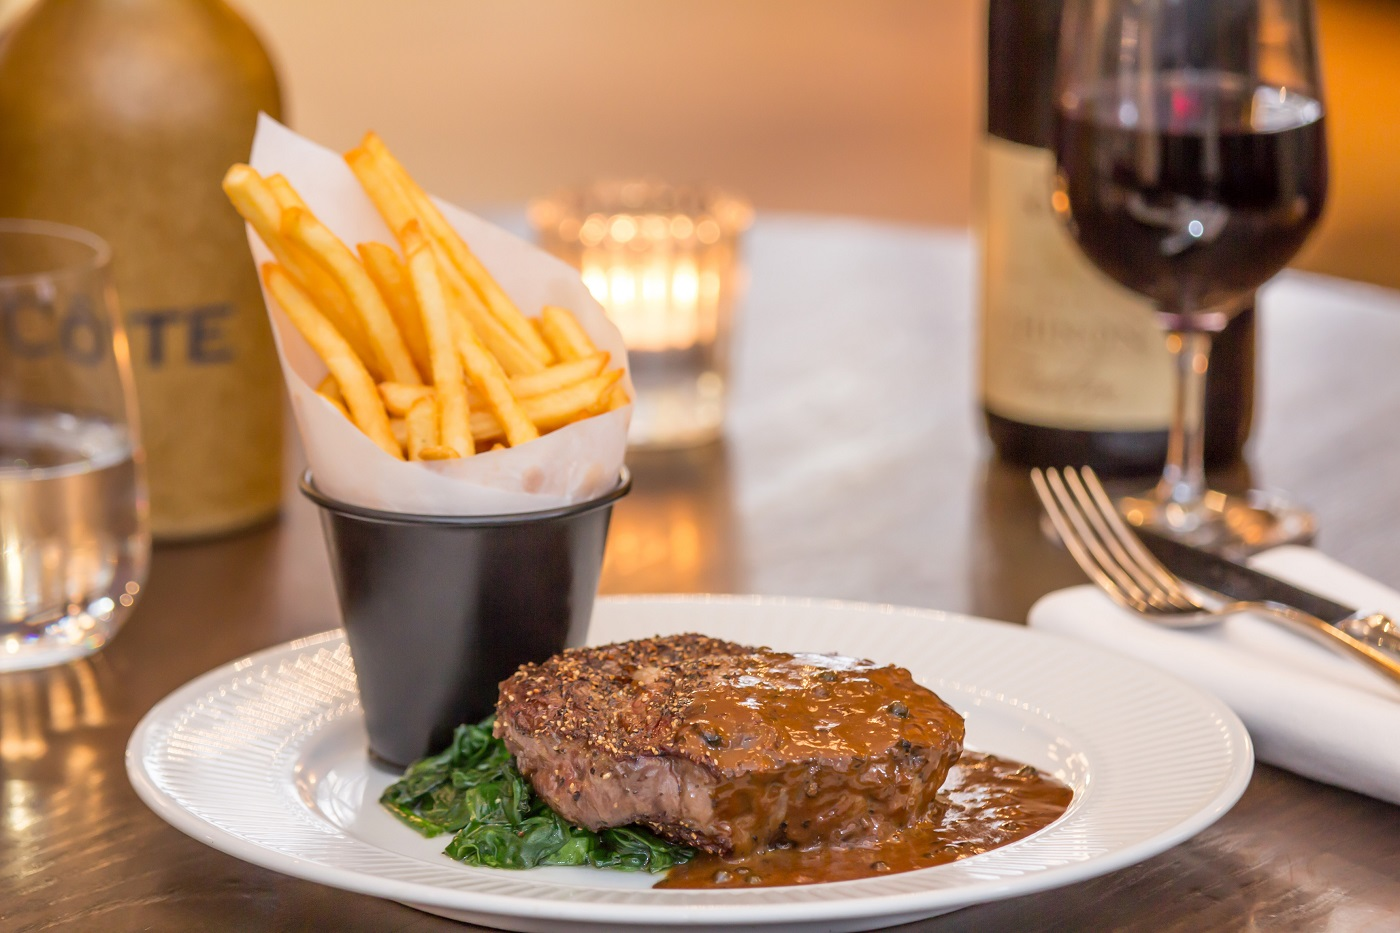 Cote Brasserie steak frites in Milsom Place